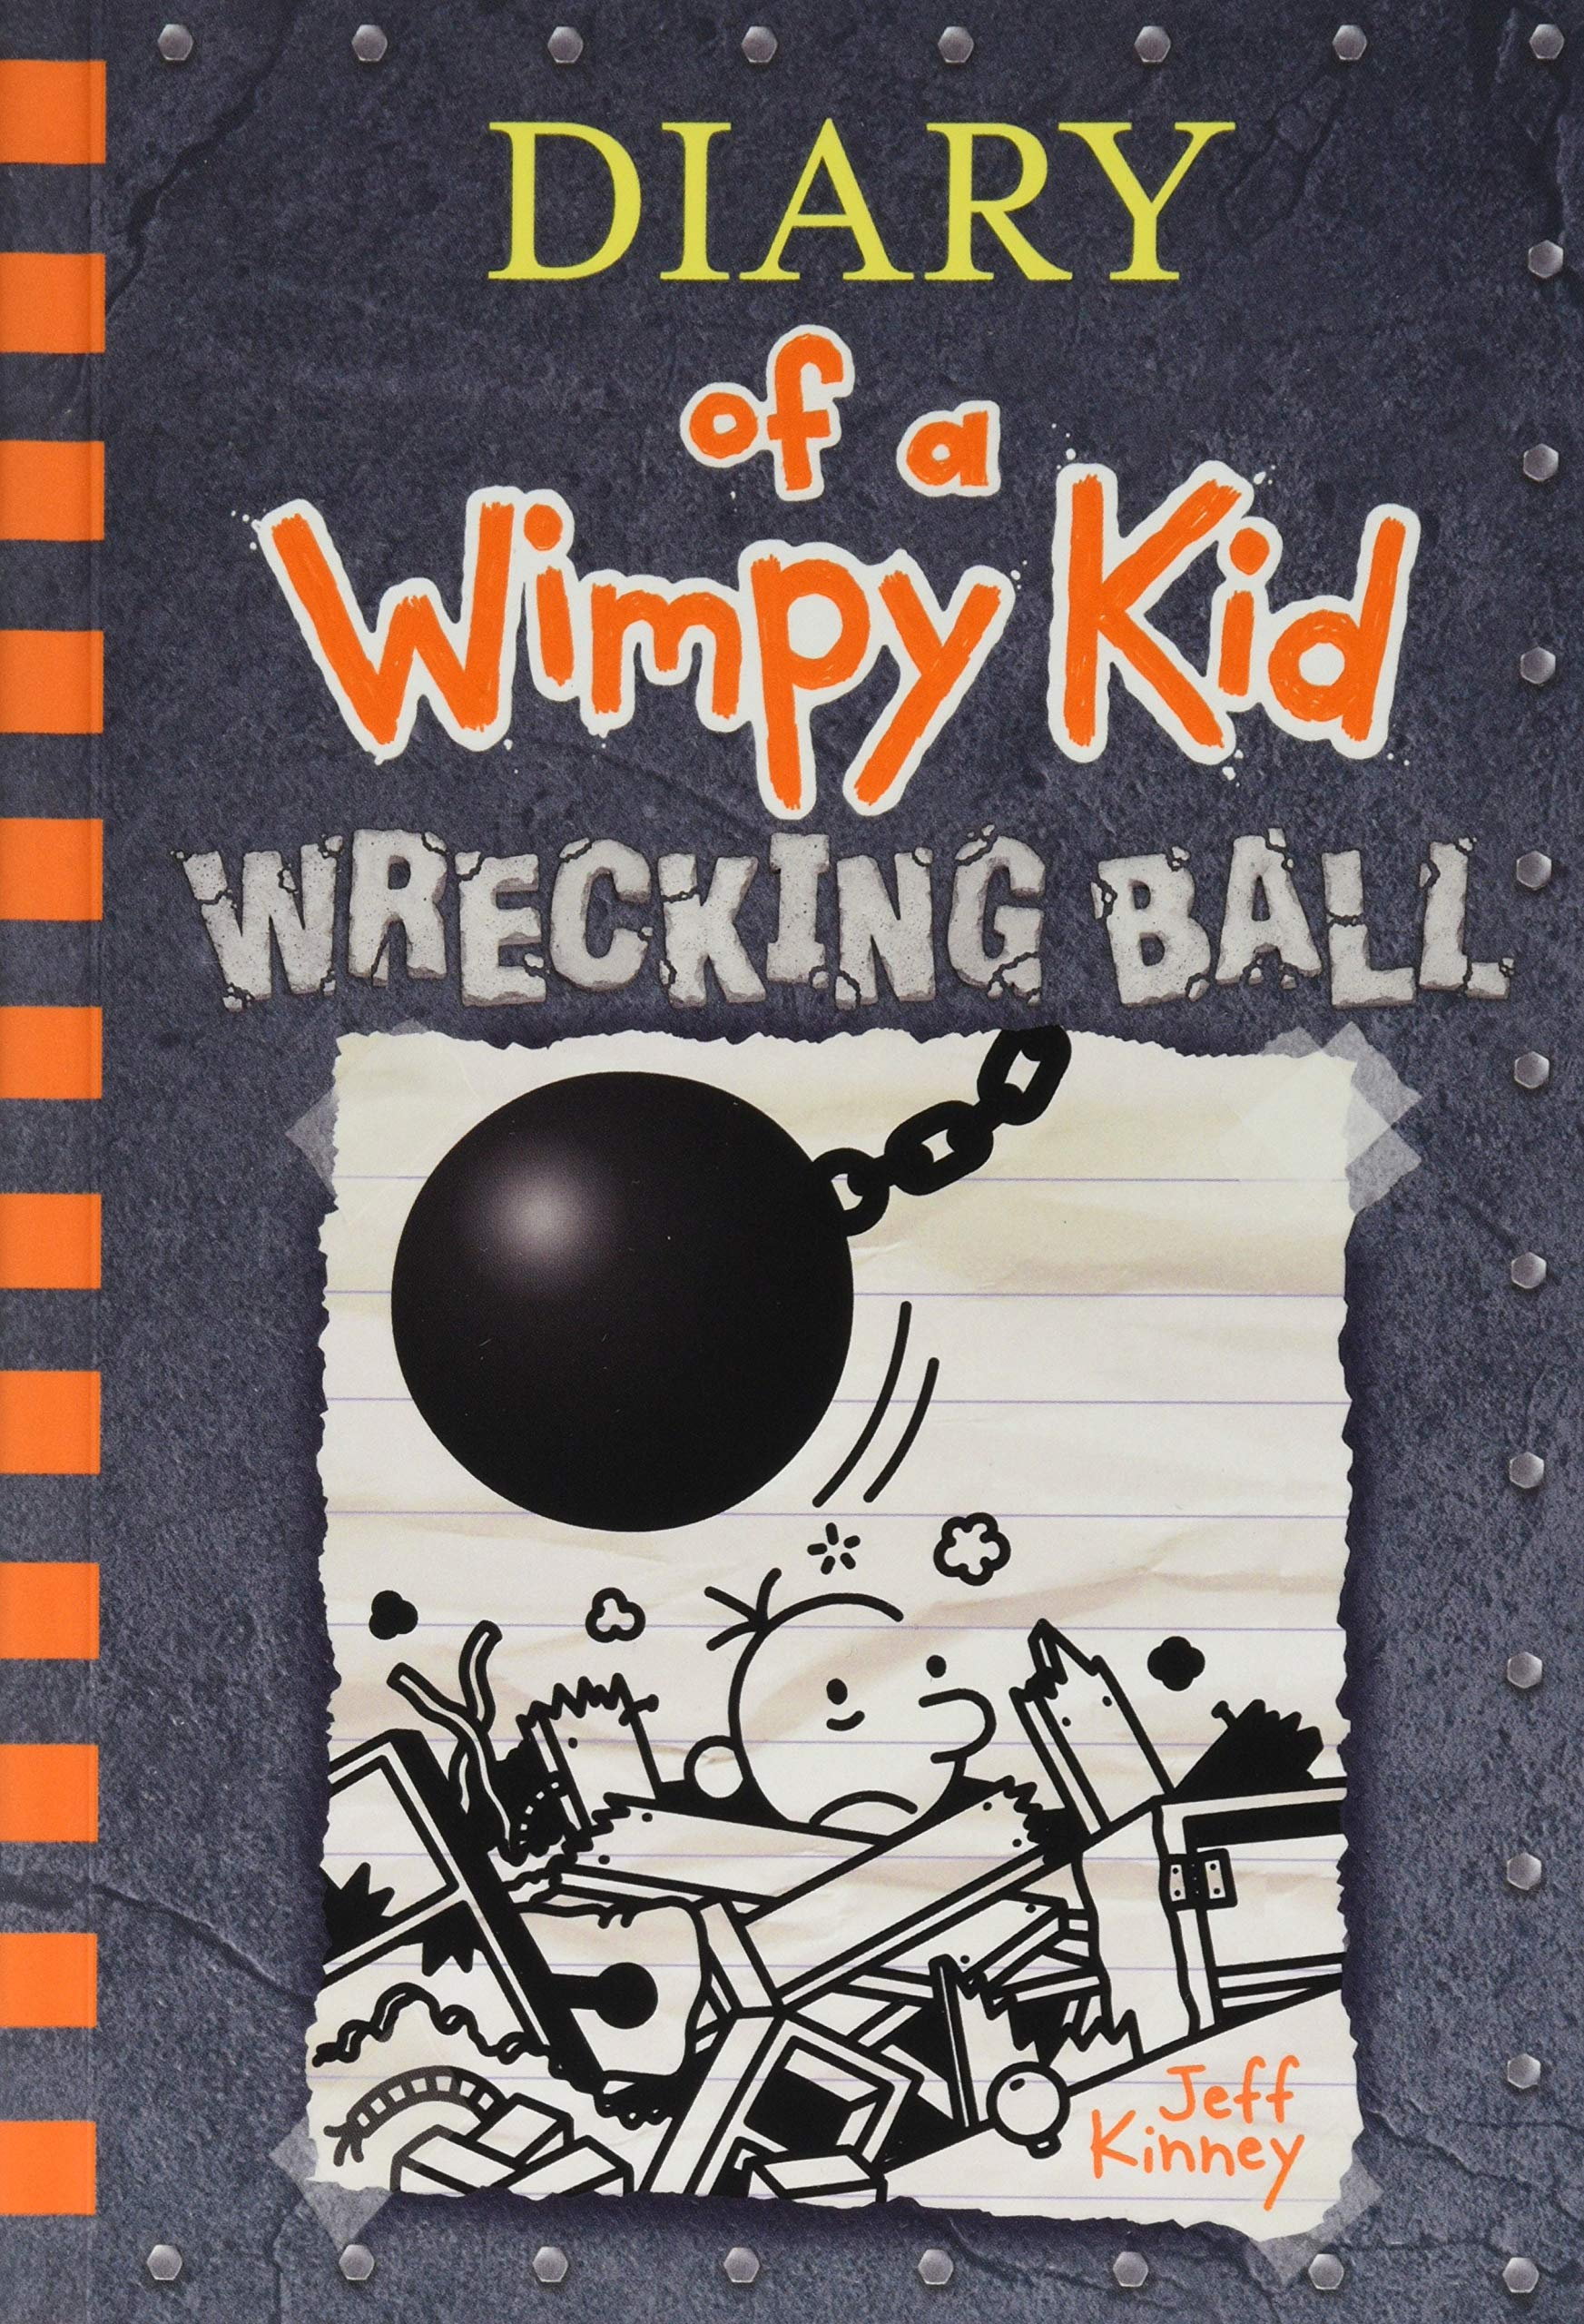 ddiary of a wimpy kid book set